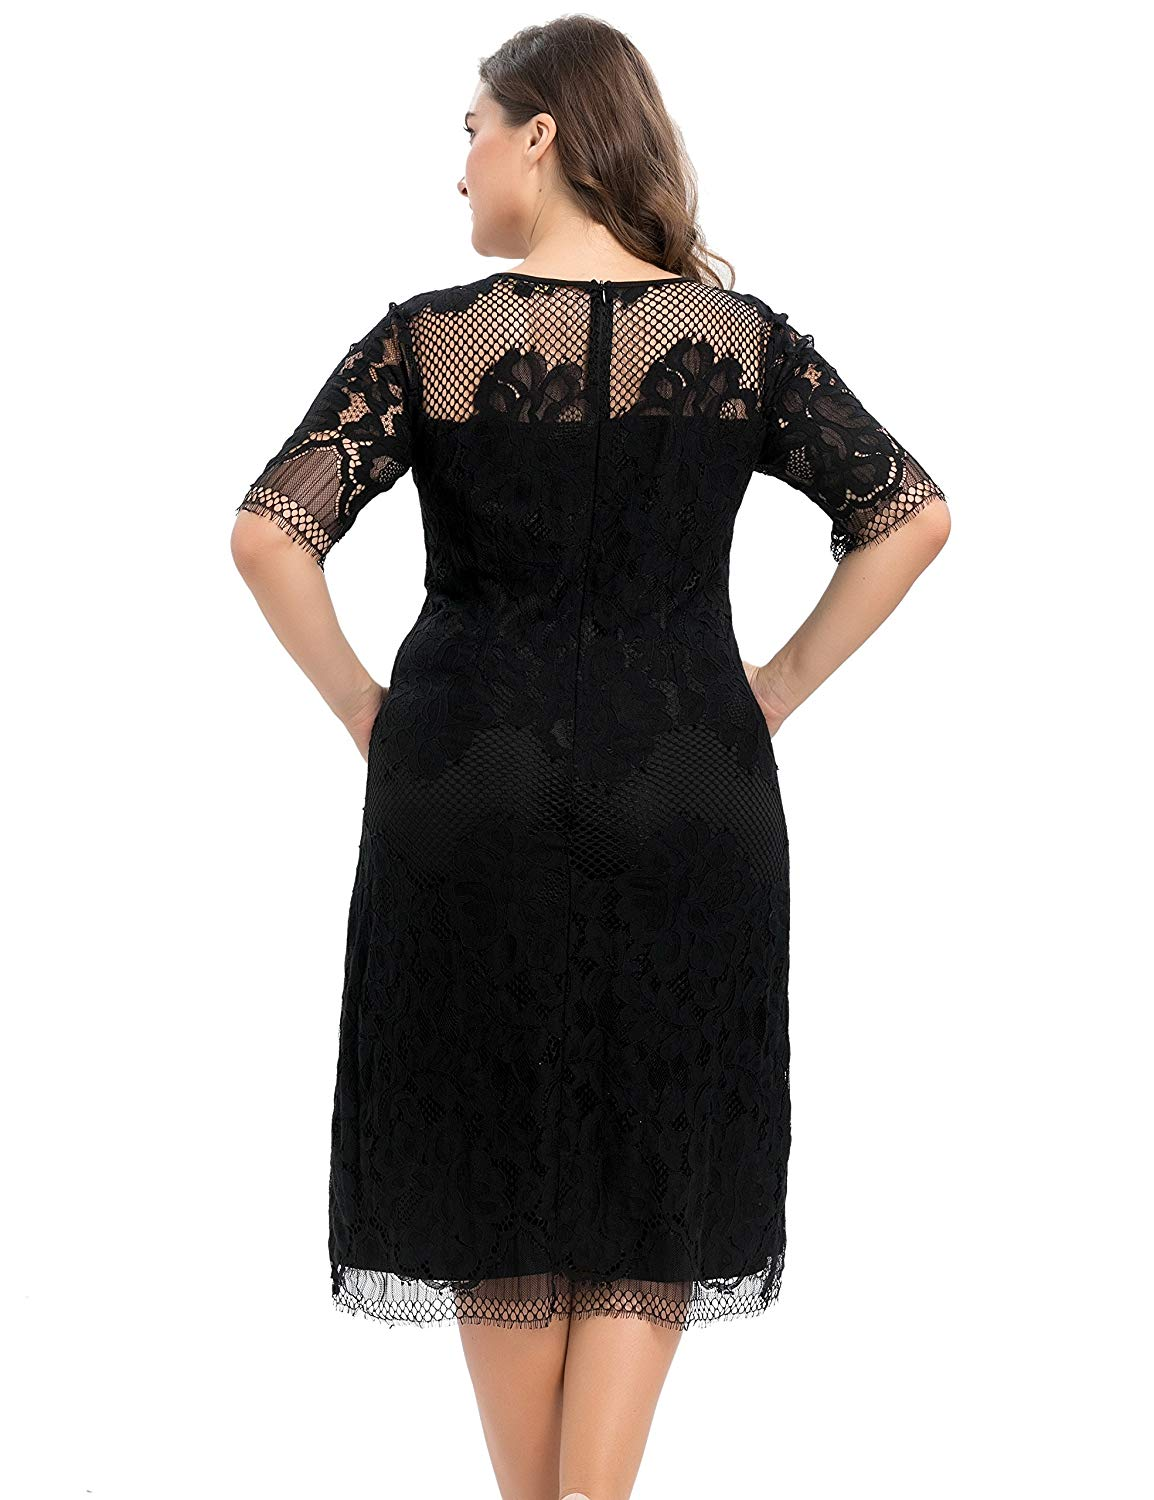 91e1d1e560 Chicwe Women s Plus Size Lined Floral Lace Dress - Knee Length Casual Party  Cocktail Dress